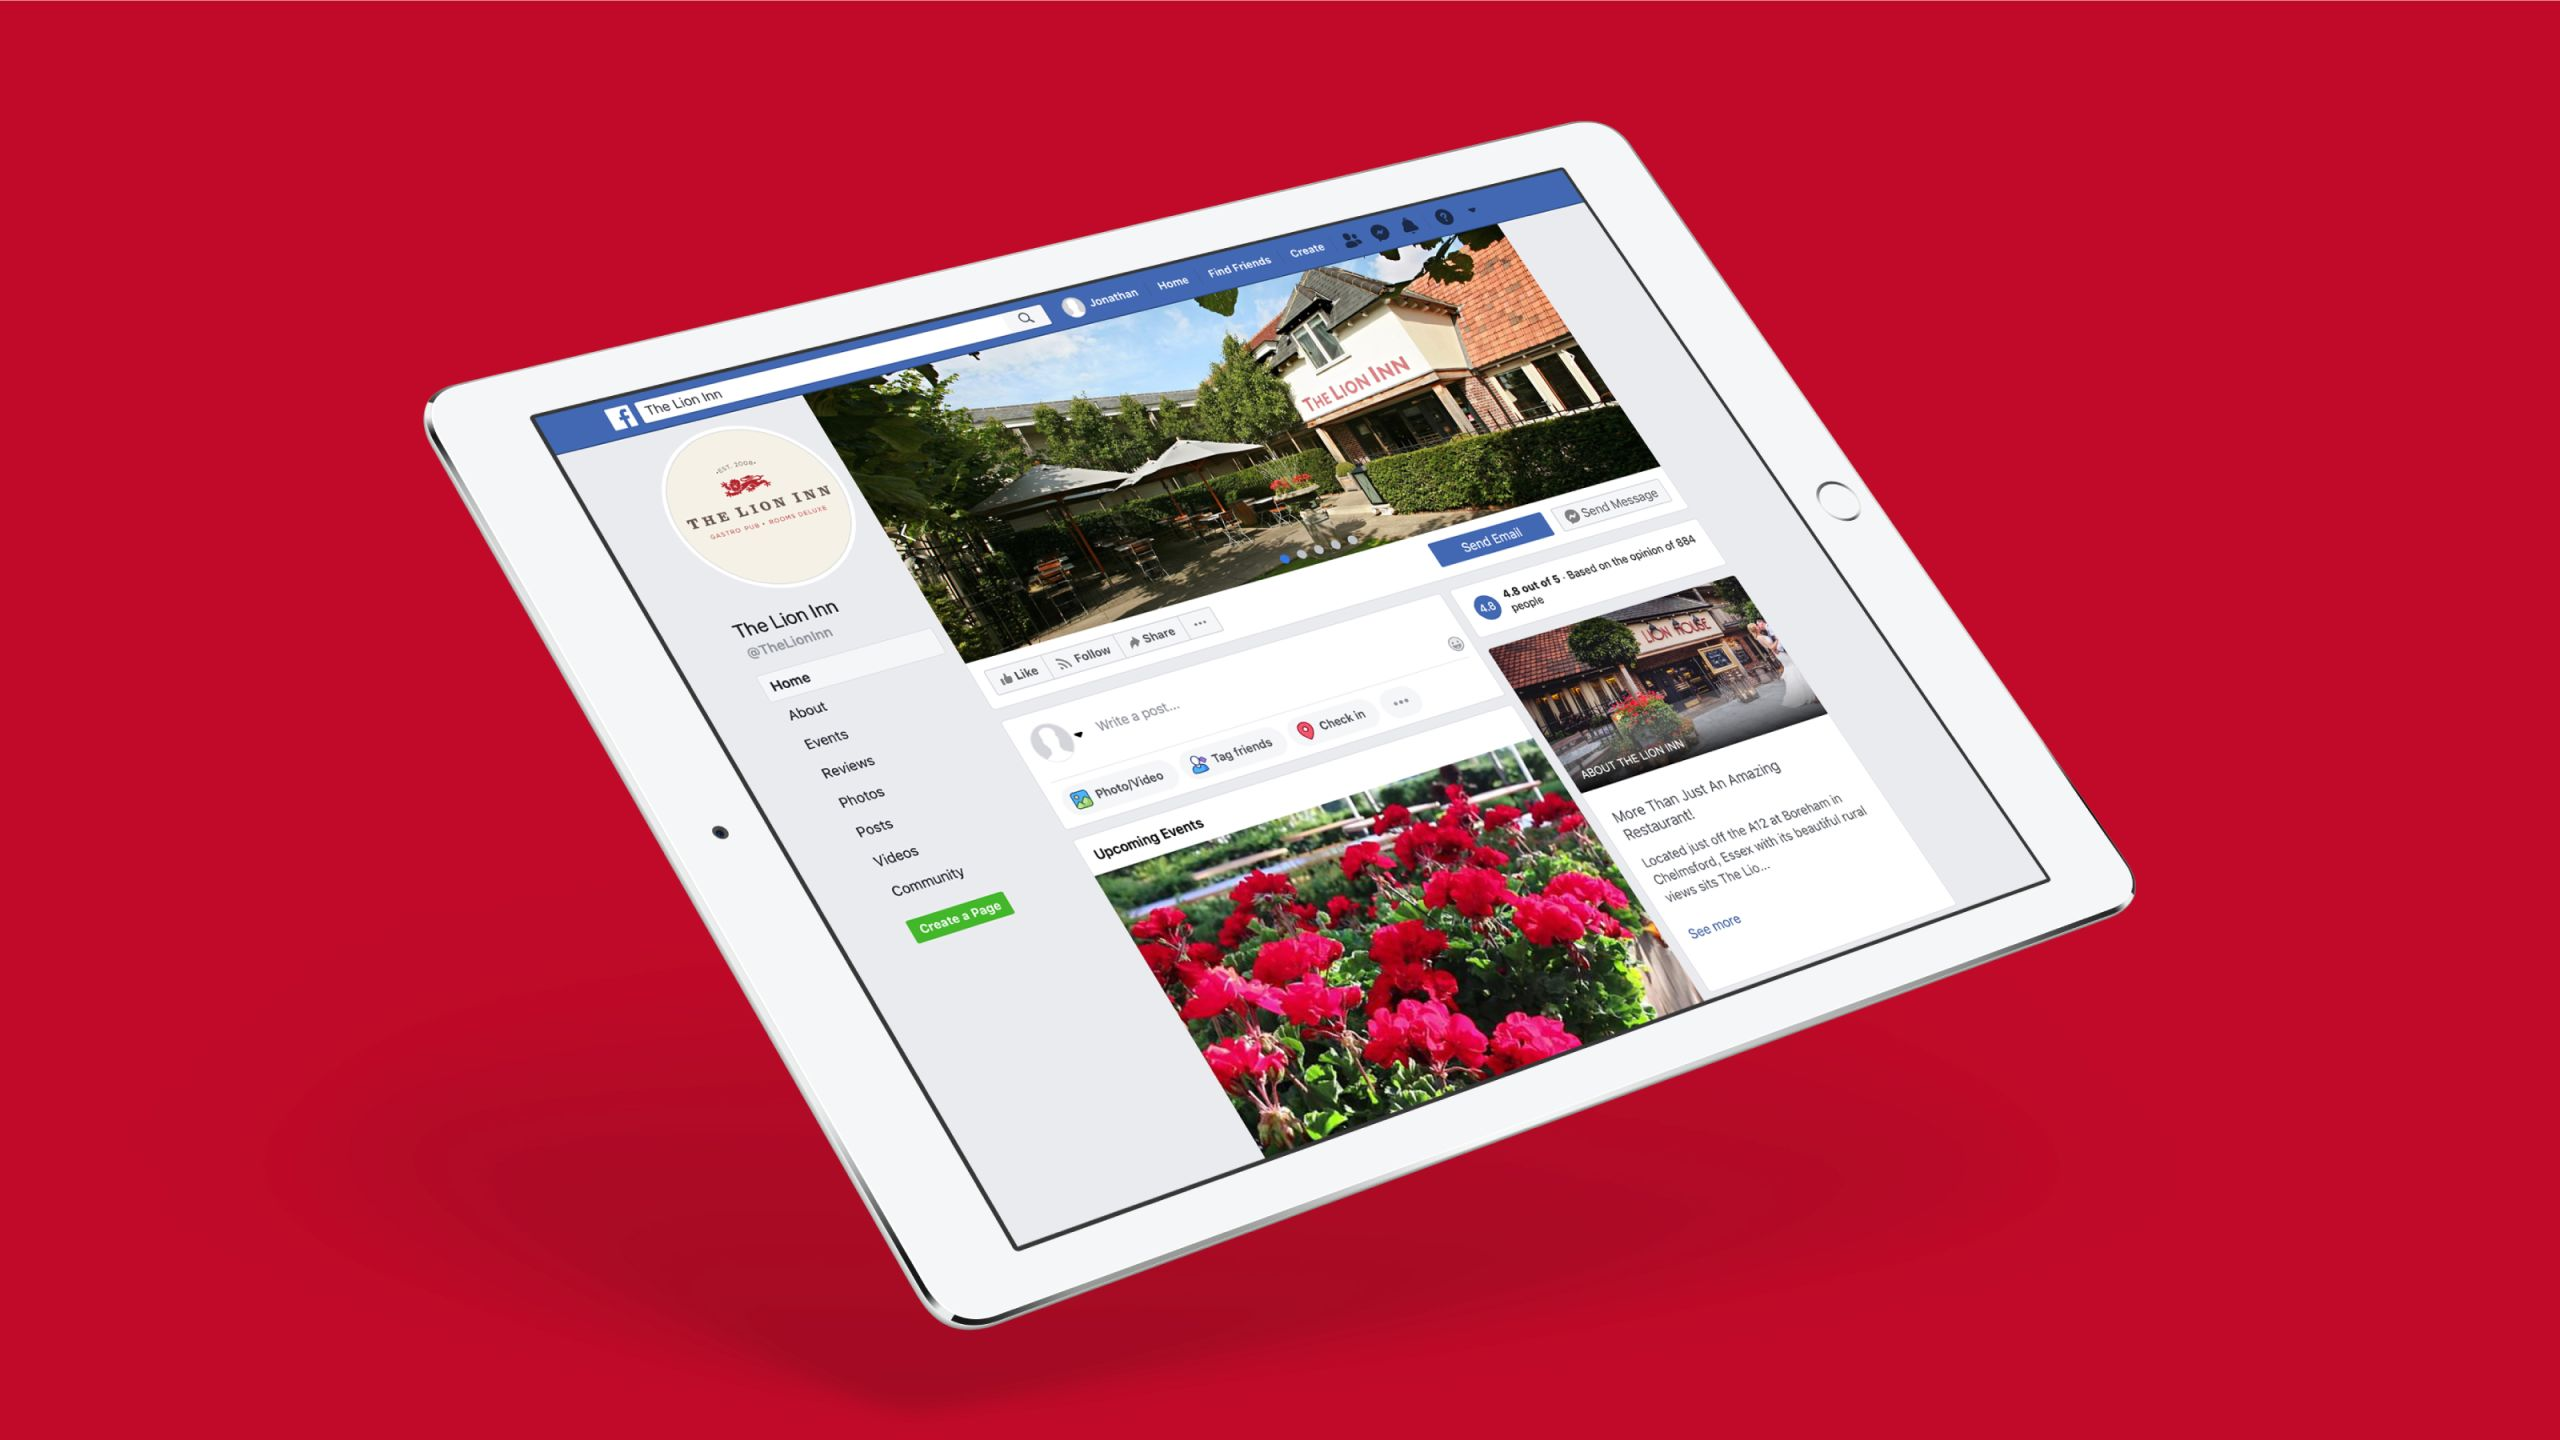 The Lion Inn Facebook page displayed on a tablet.